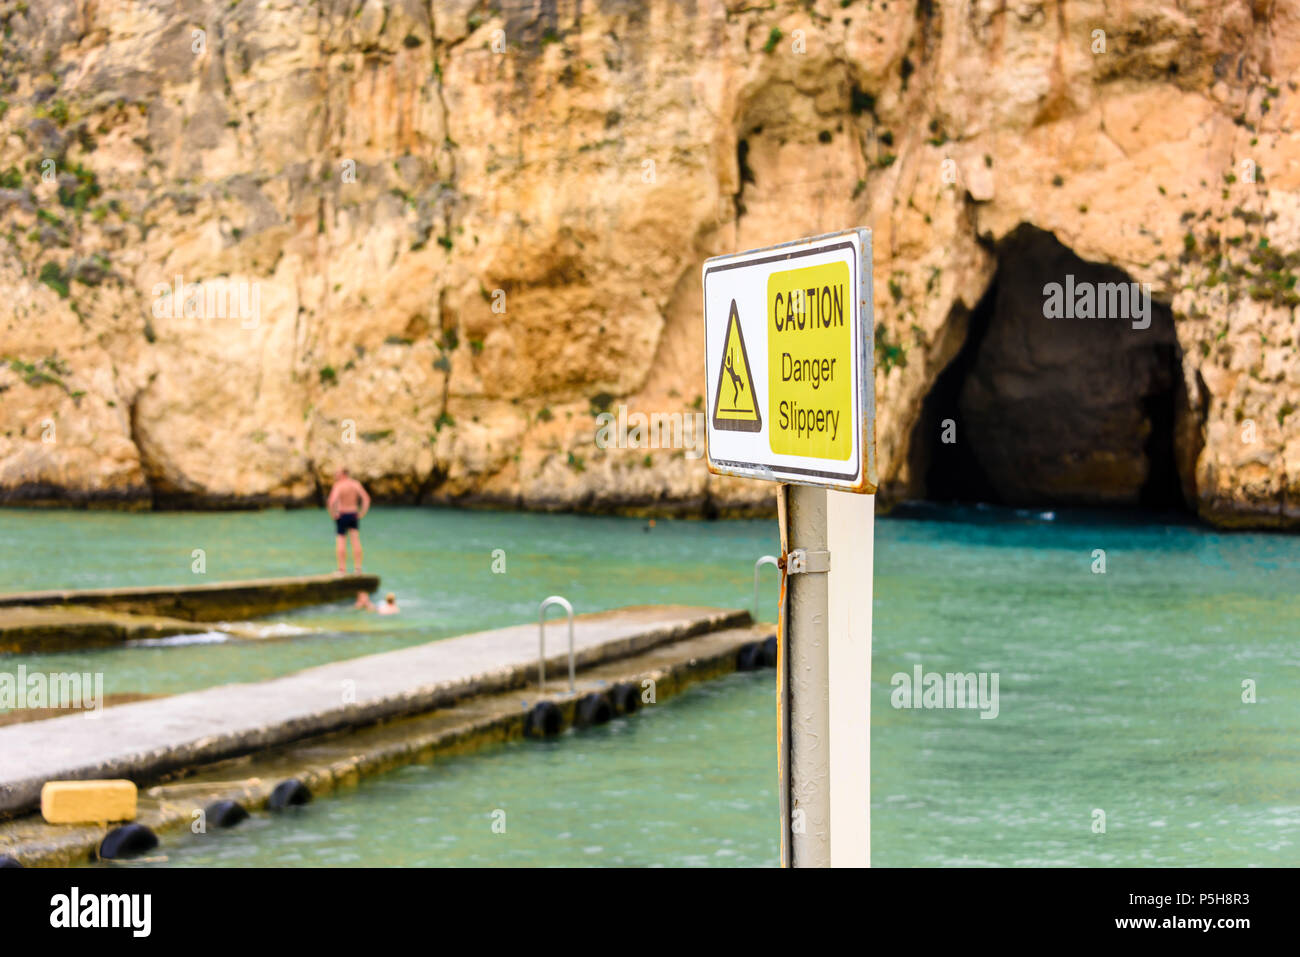 Sign at Dwerja, the inland sea, Gozo, Malta, warning that the jetties can be slippery.  The cave joins with the Mediterranean sea on the other side of - Stock Image